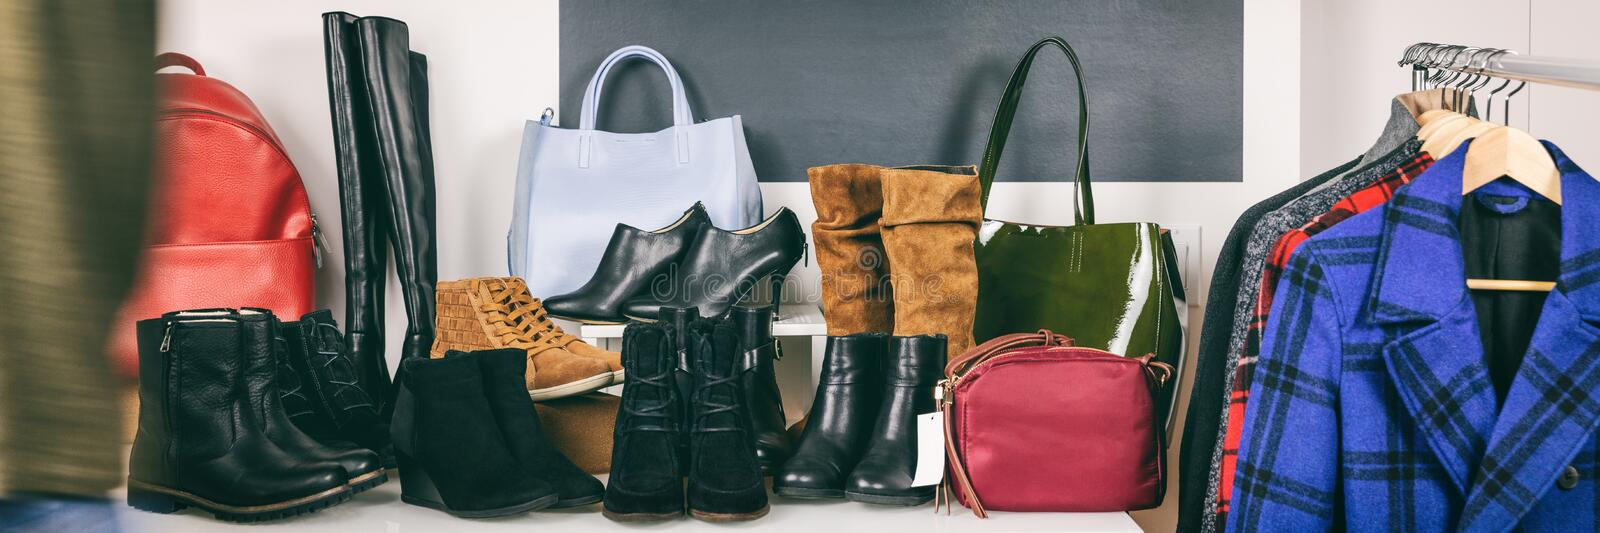 Shoe store shopping mall sale people choosing winter boots at shop banner panorama of shoes and purses on shelves. Blackboard in. Background with autumn bags stock photo